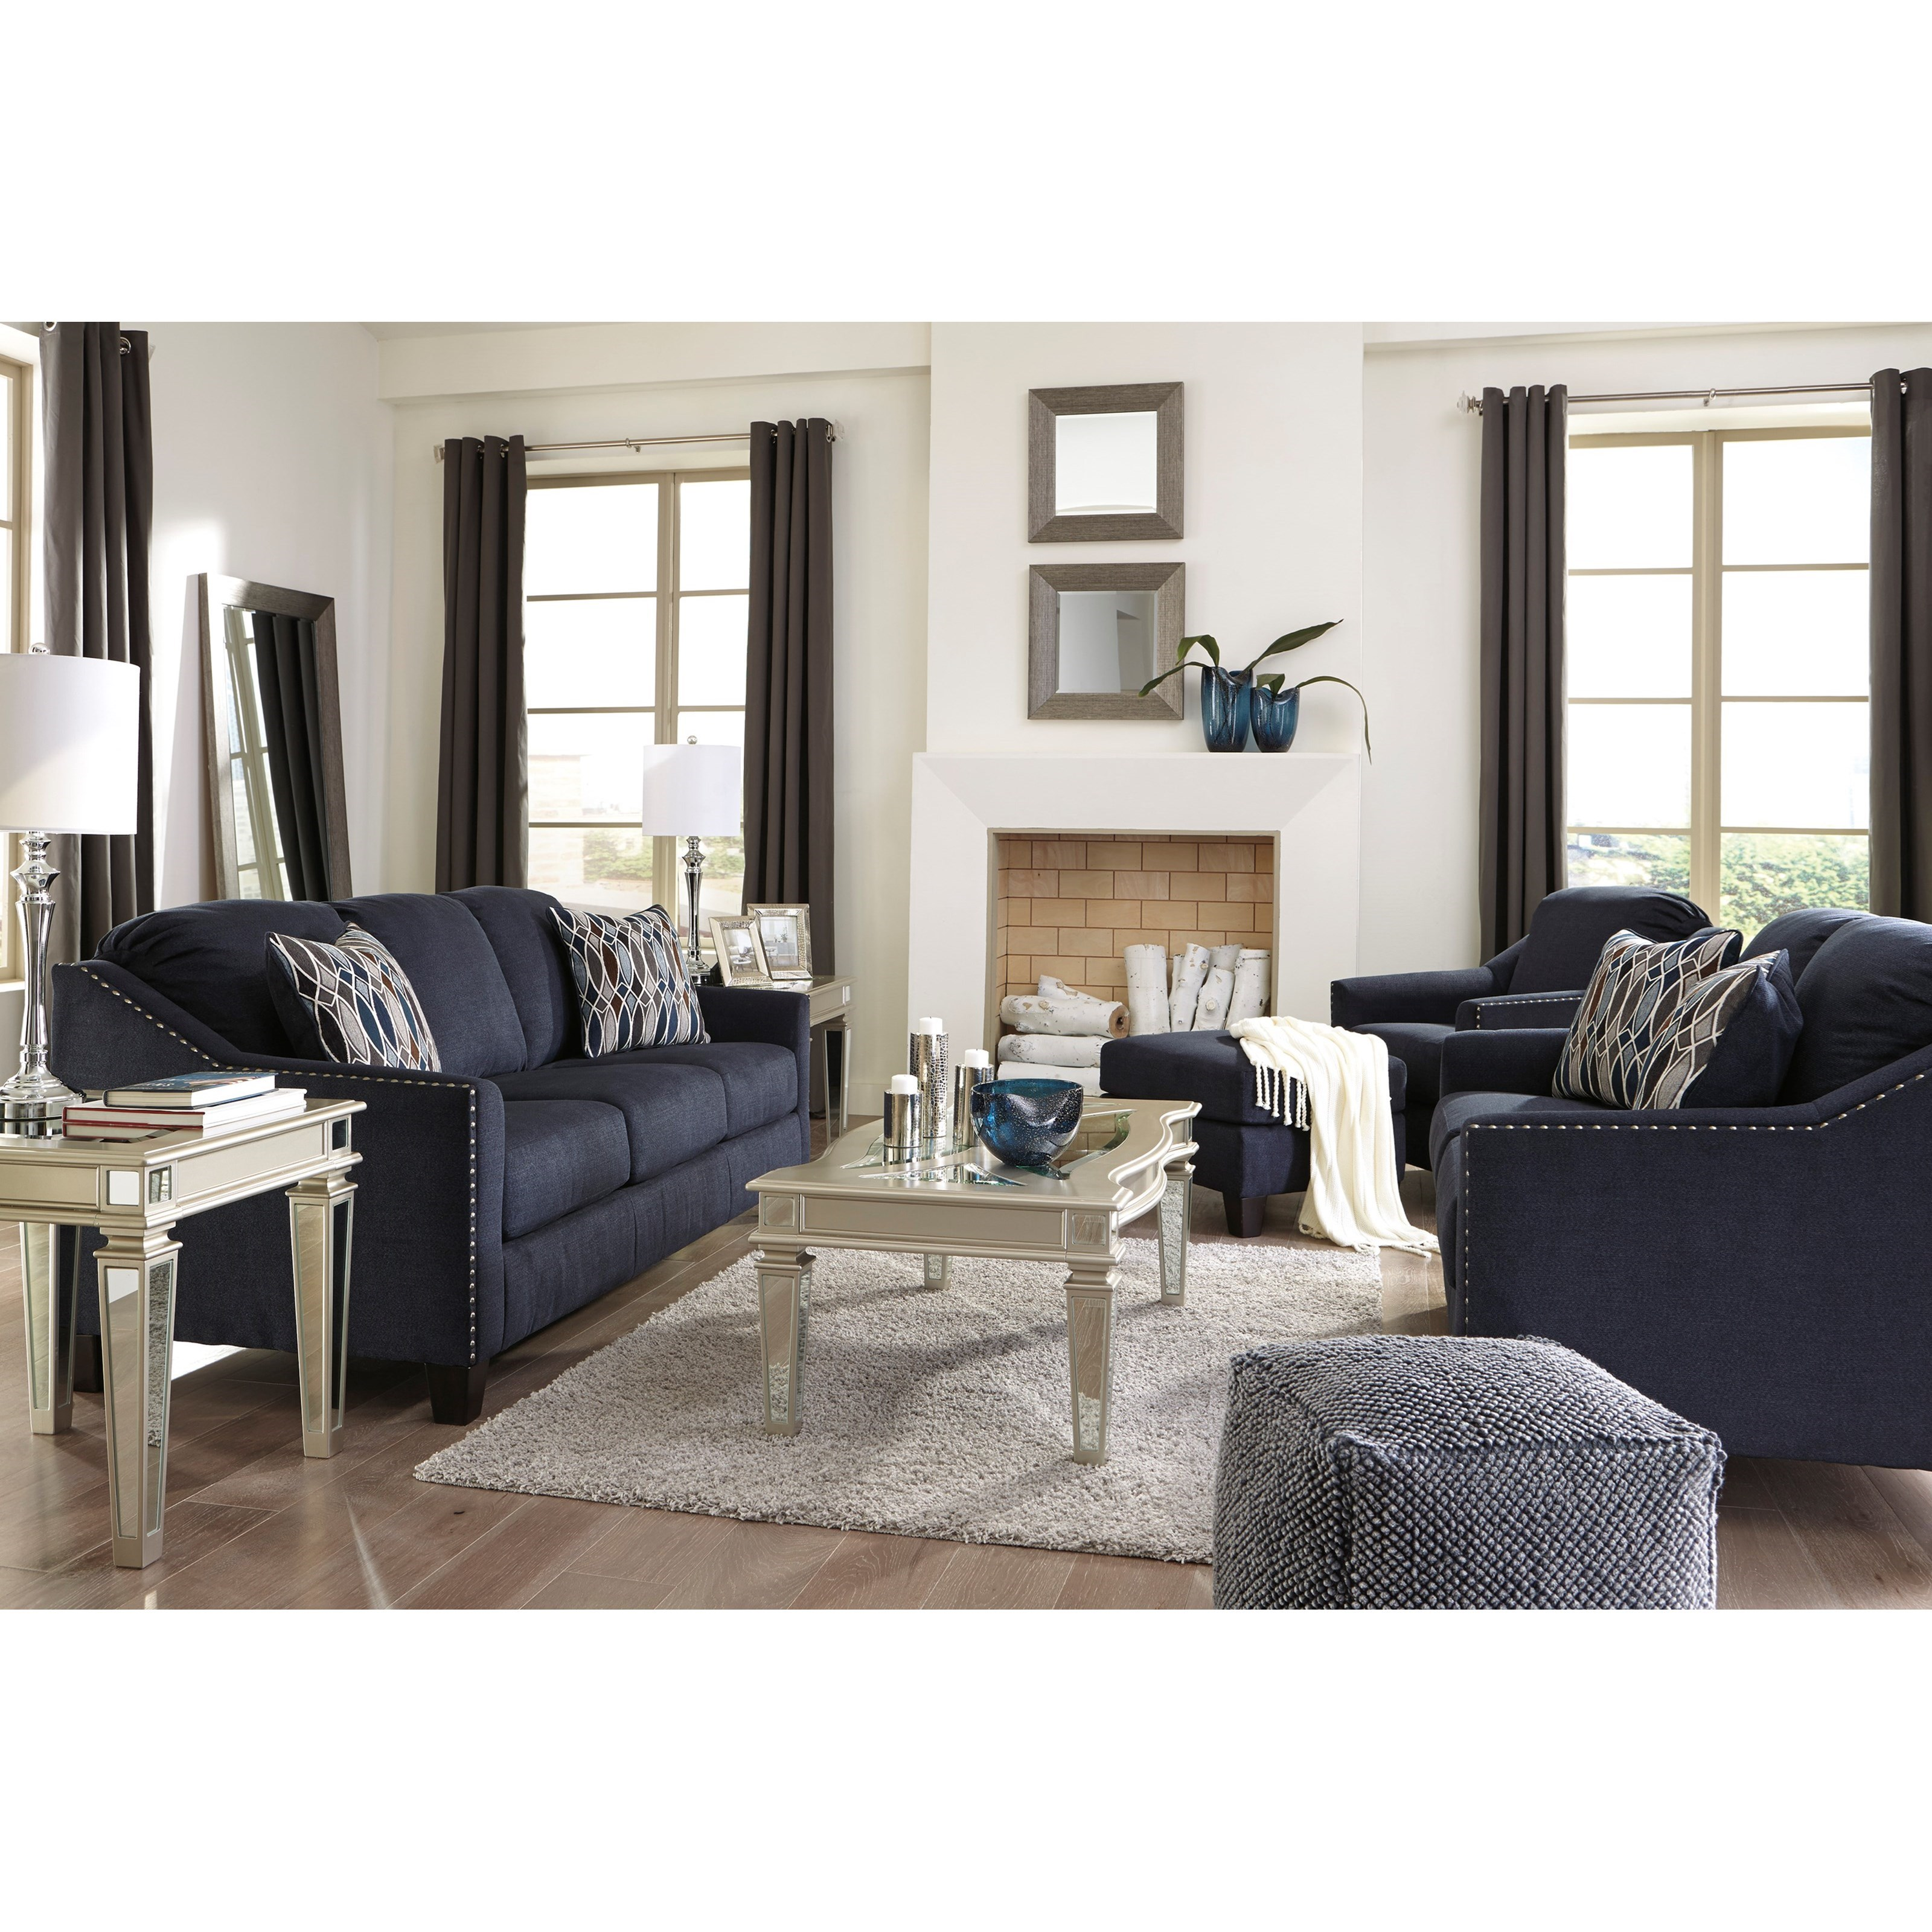 Creeal Heights Living Room Group by Benchcraft at Miller Waldrop Furniture and Decor